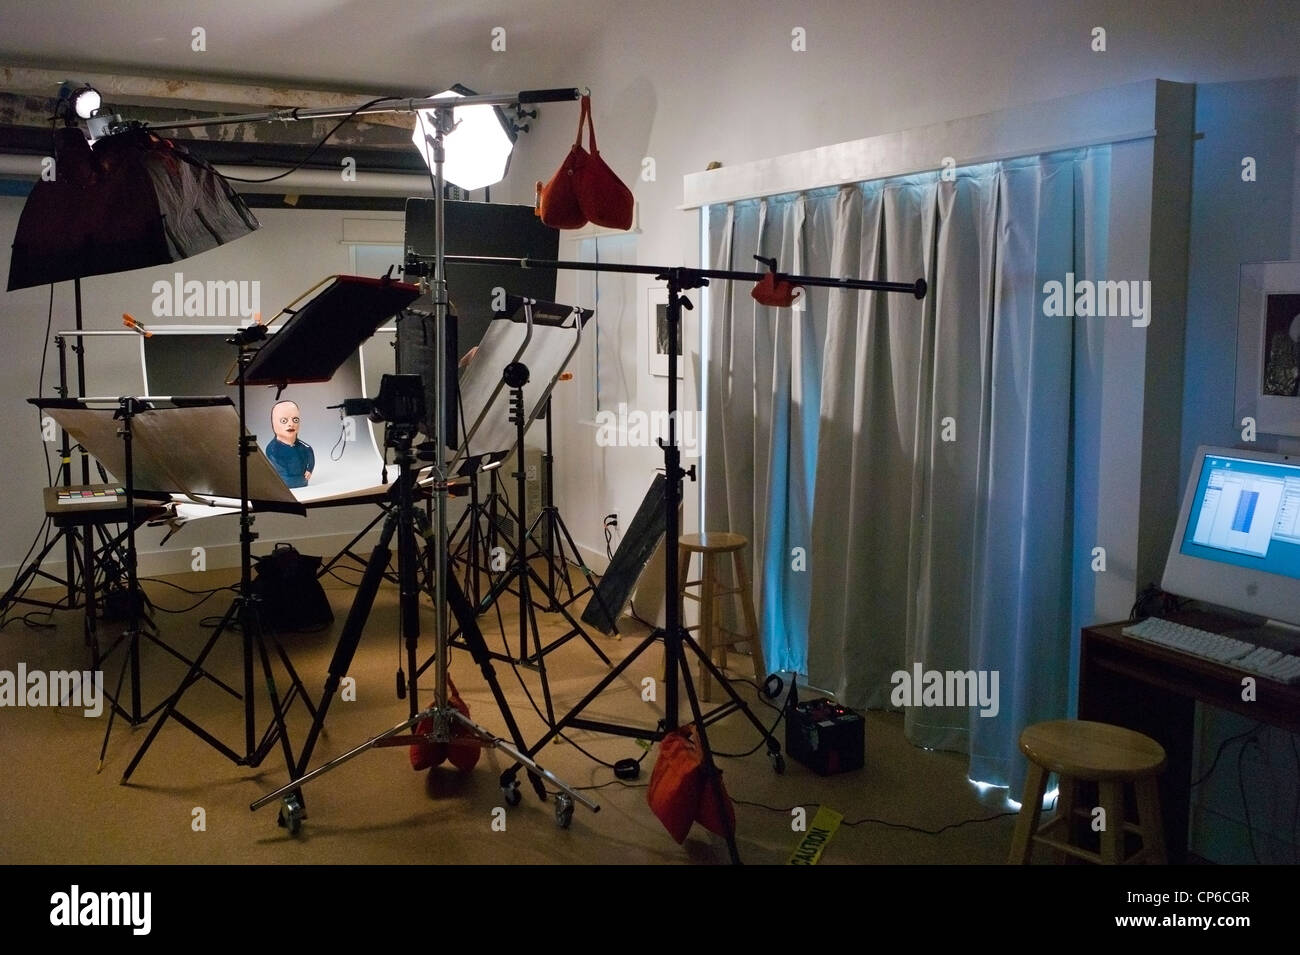 Lighting grip and camera equipment in a commercial photography lighting grip and camera equipment in a commercial photography studio aloadofball Images